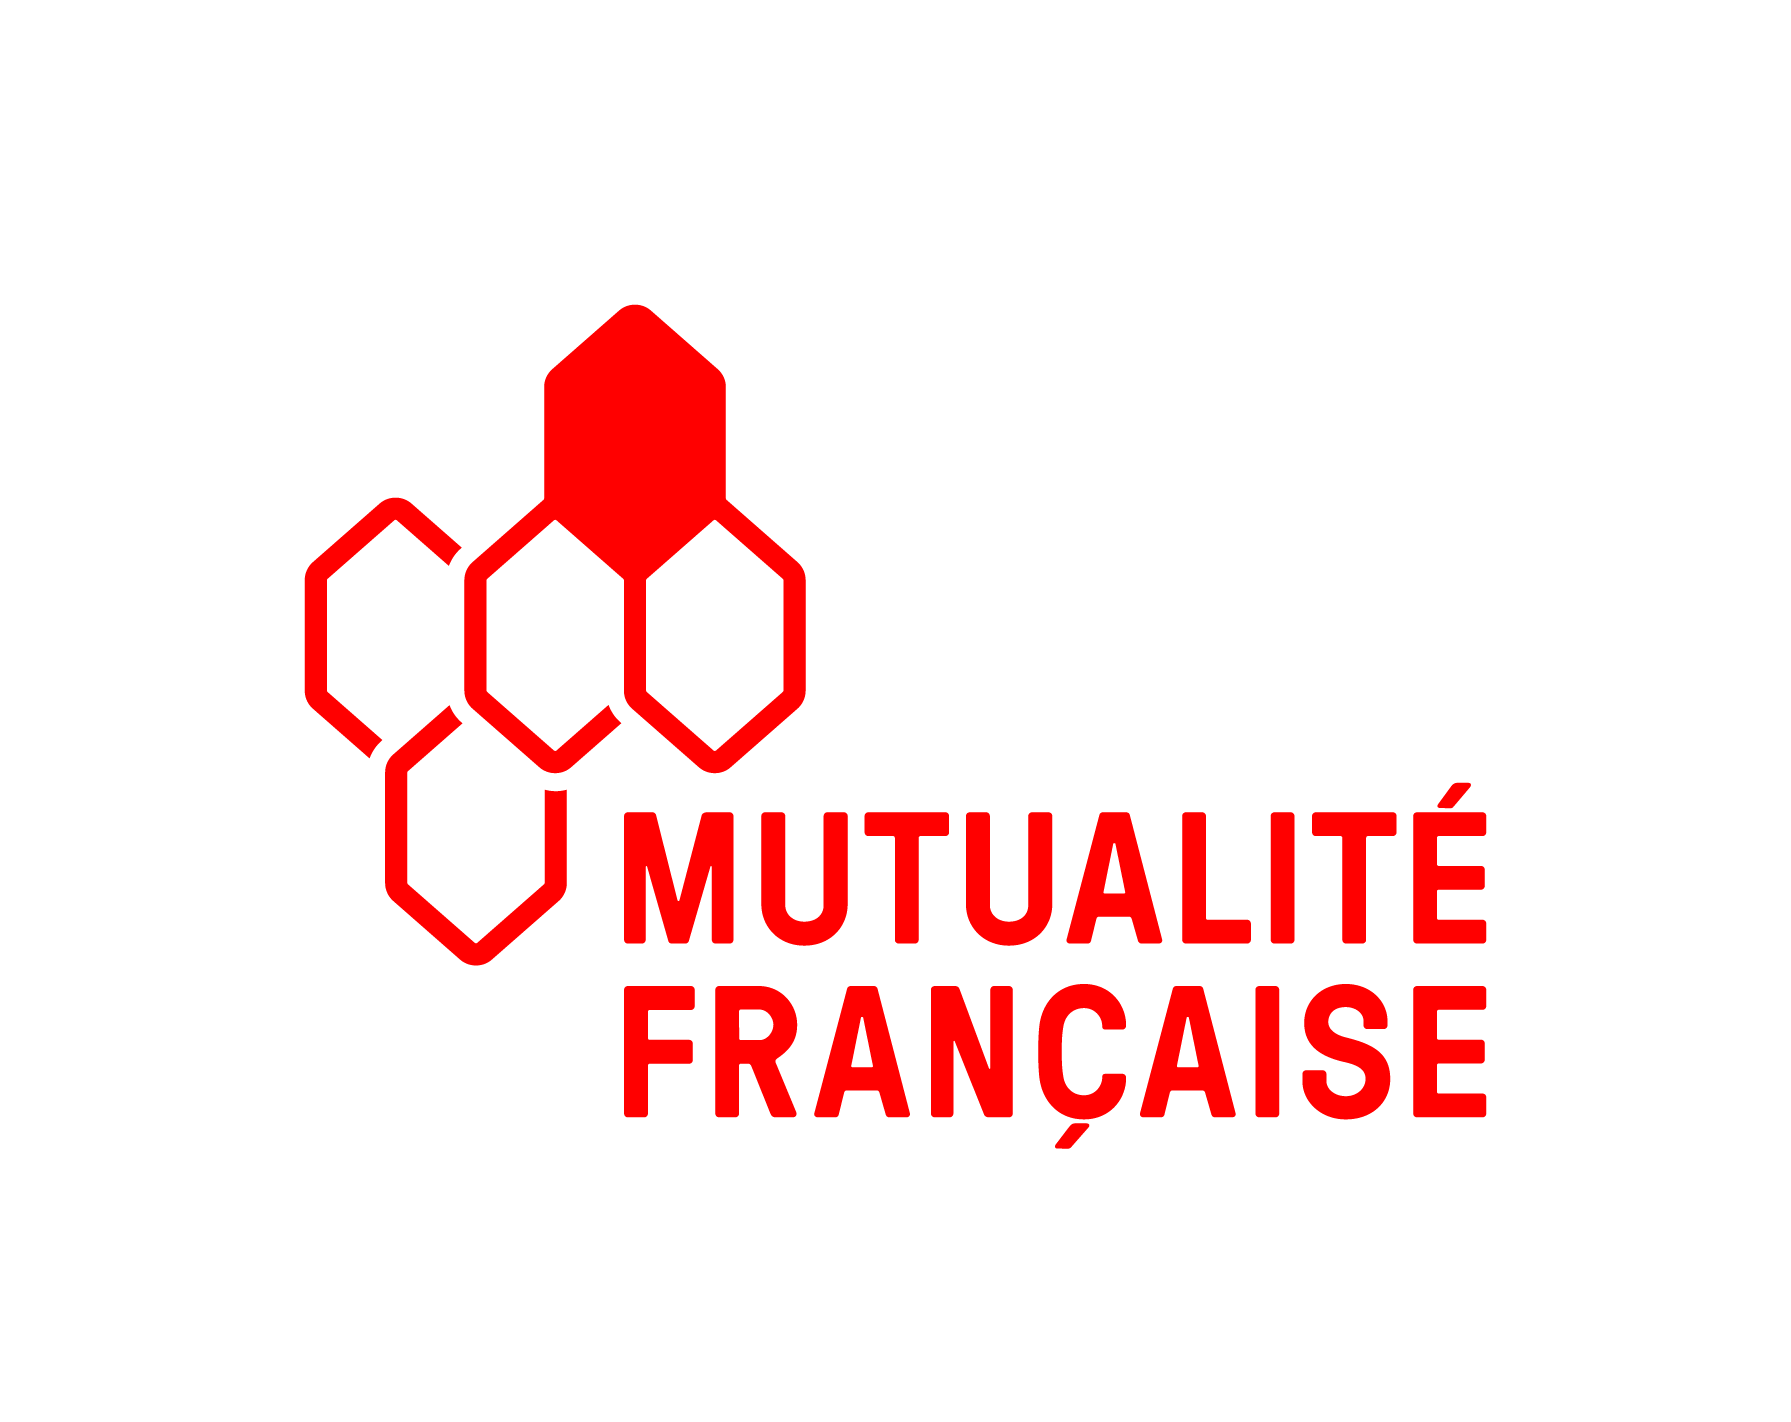 Mutualite-française.png